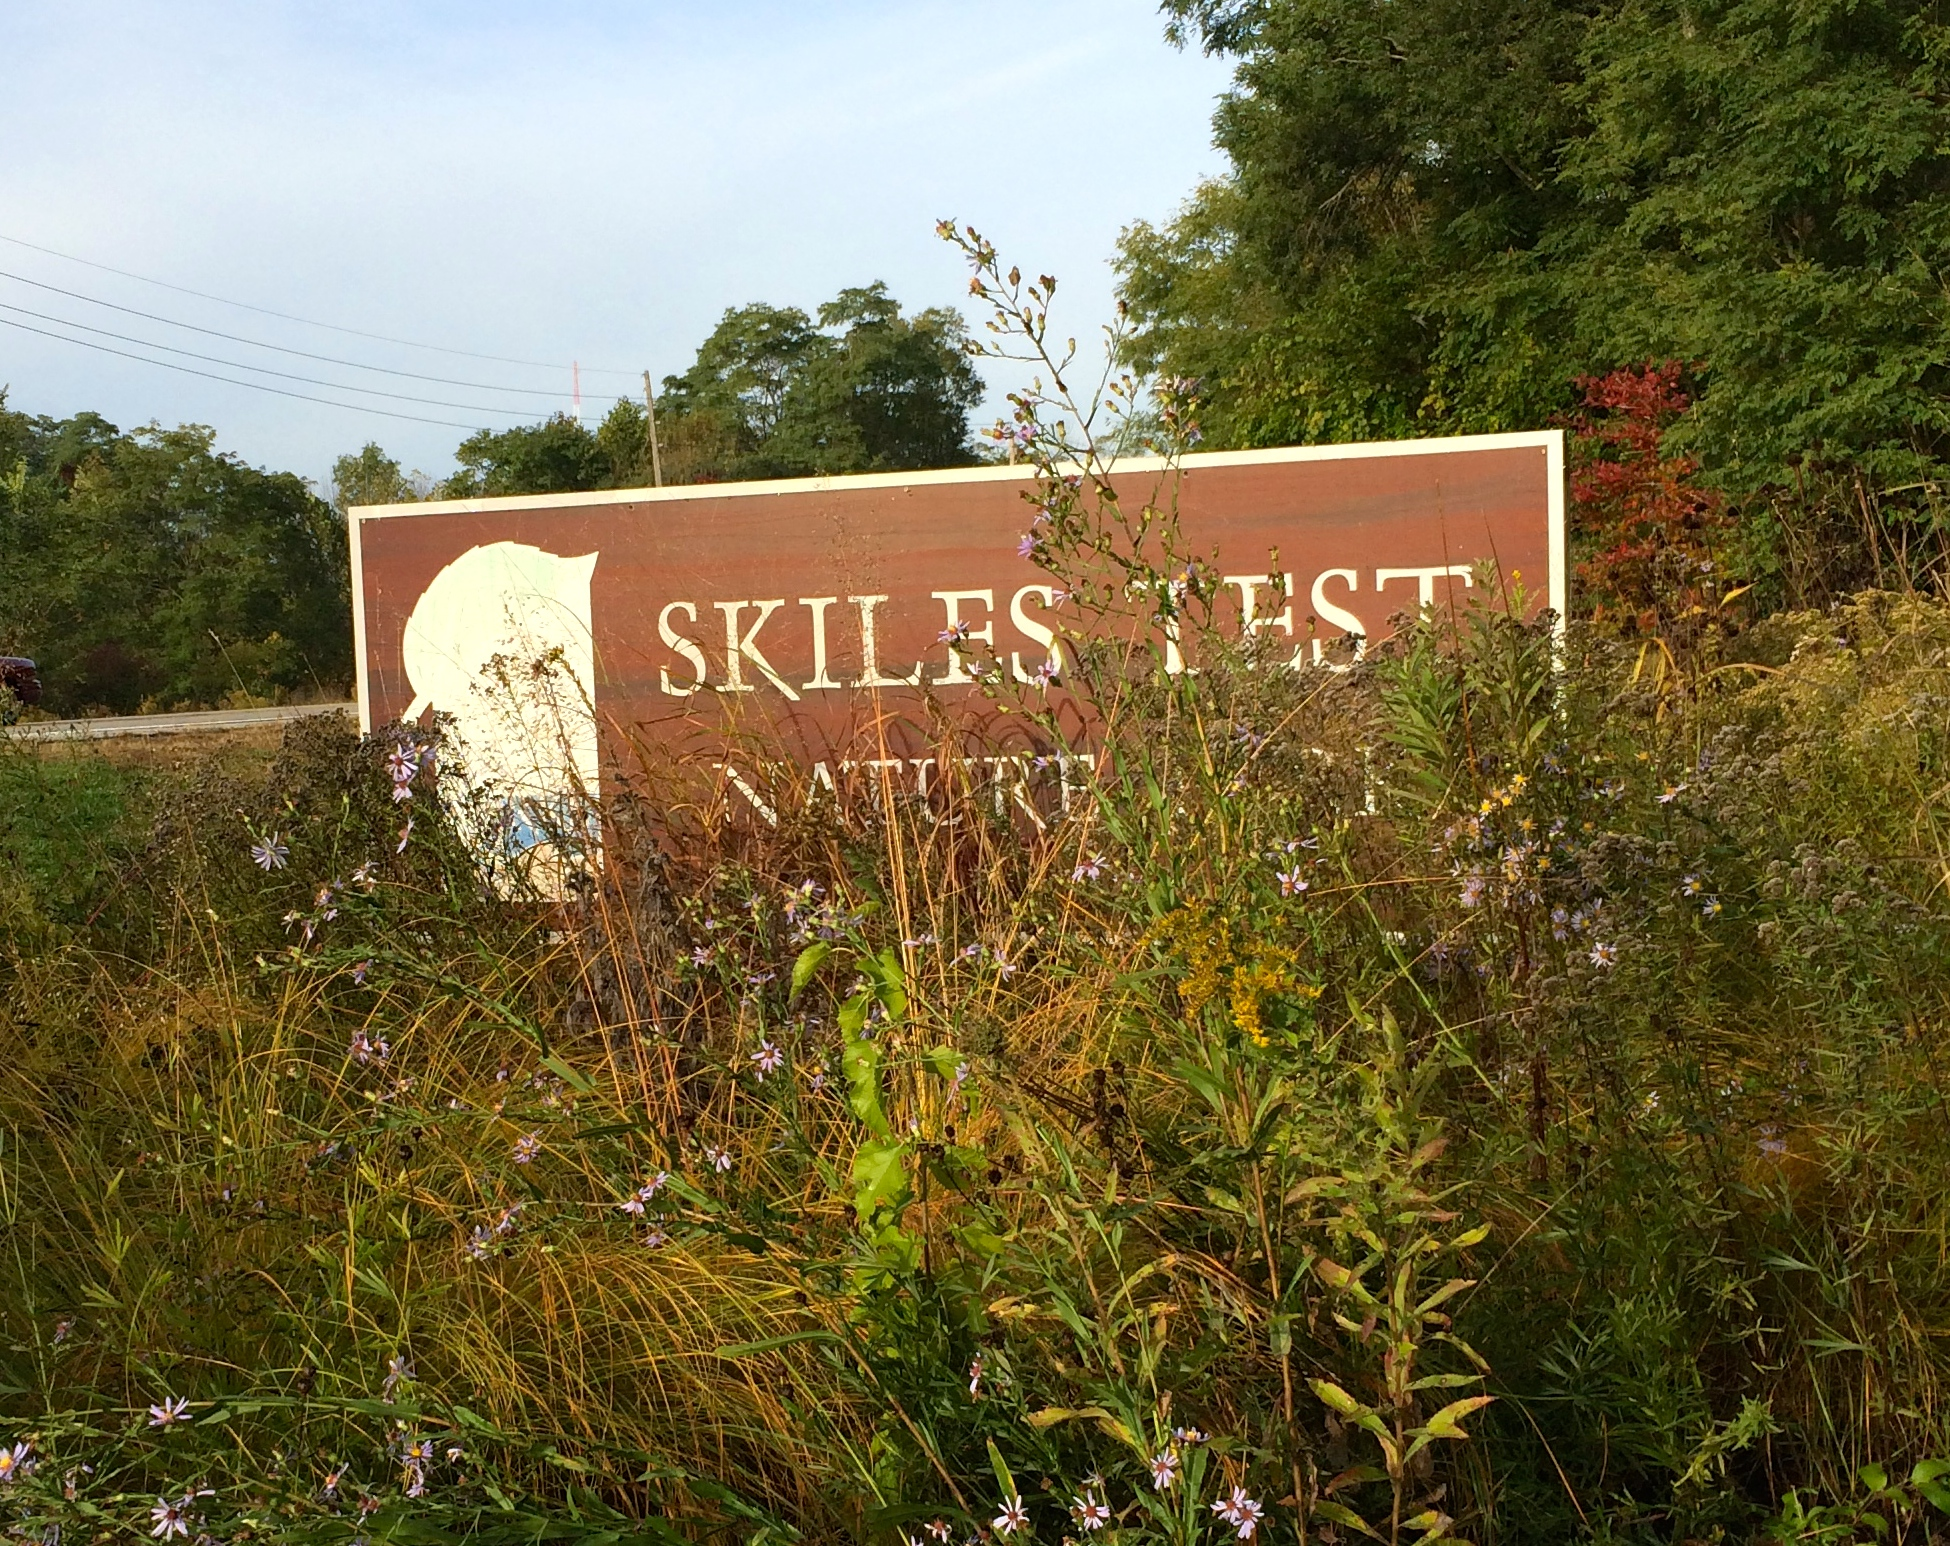 In the Park: Skiles Test Nature Park